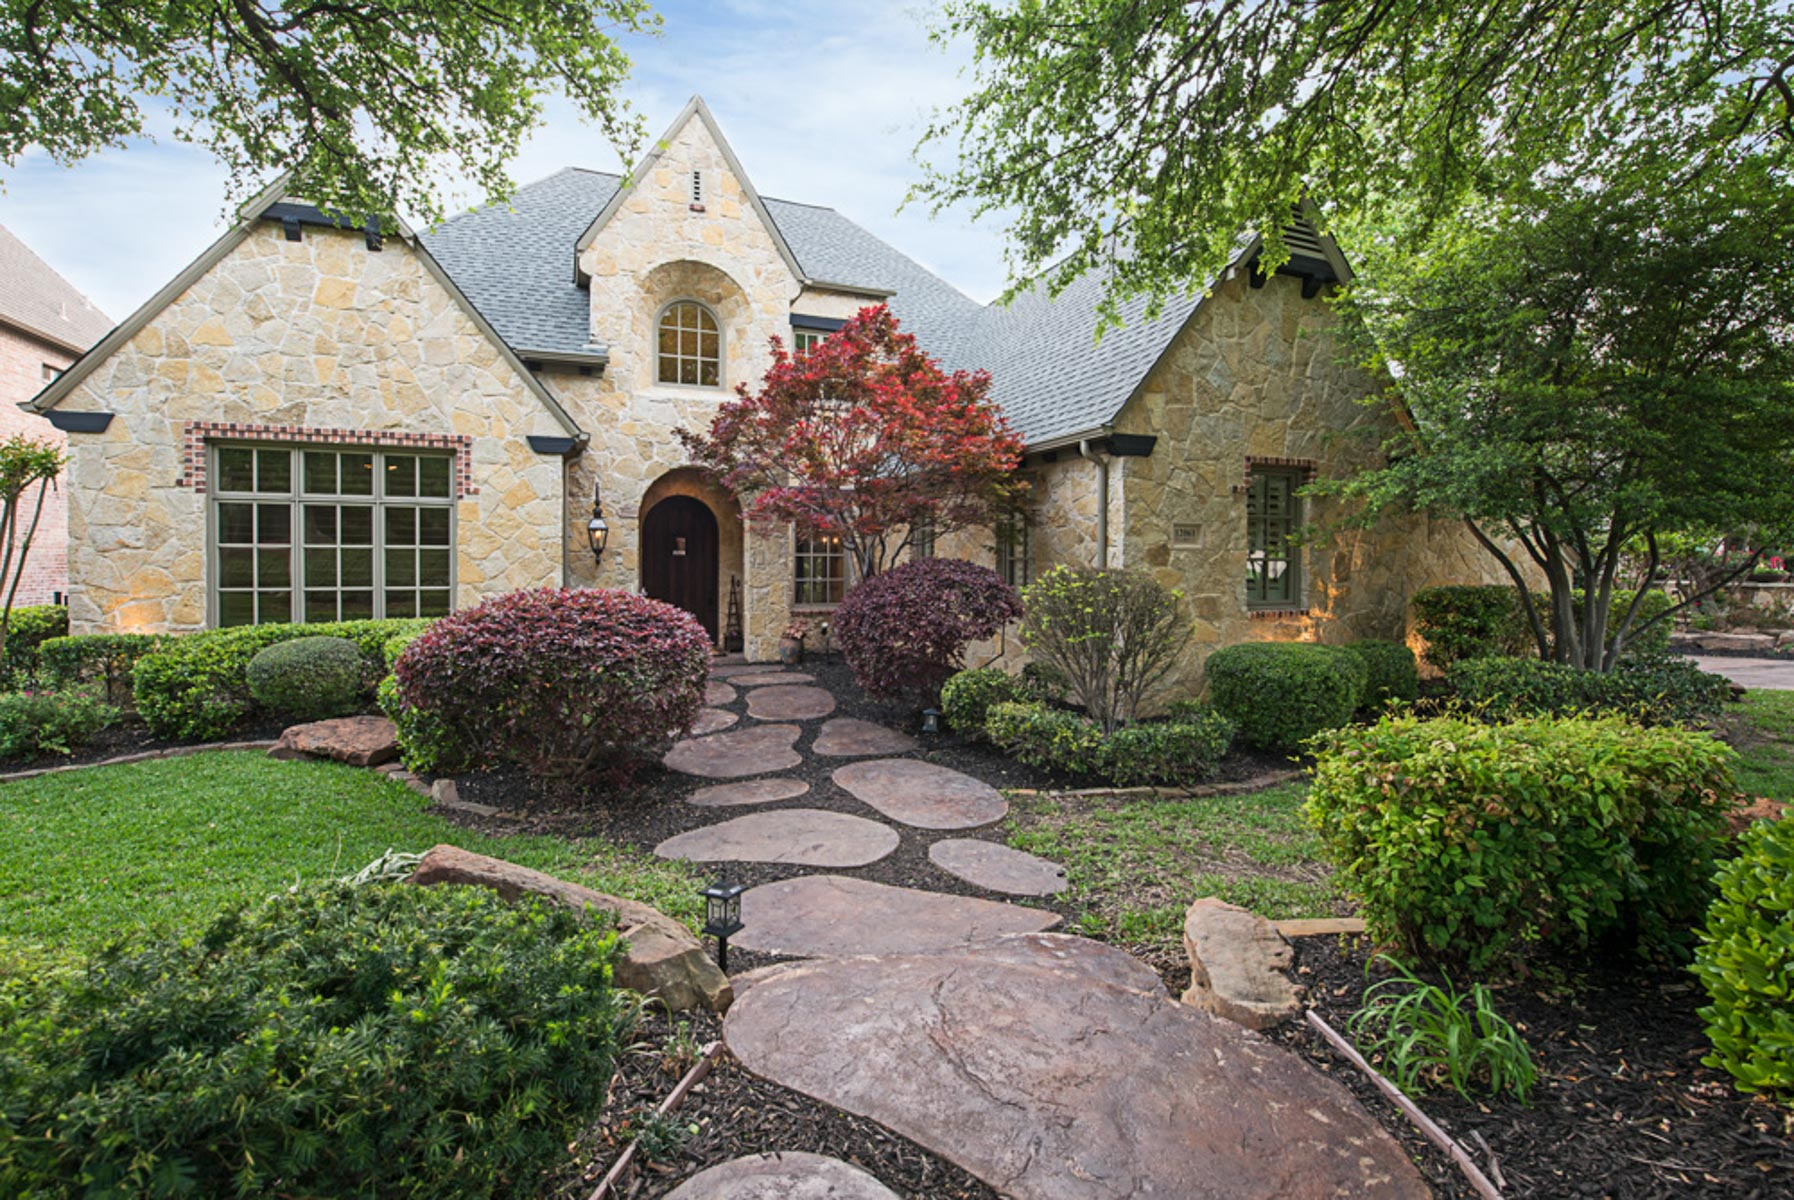 Villa per Vendita alle ore Custom in Frisco's Latera 12061 Via Bello Ct Frisco, Texas, 75035 Stati Uniti